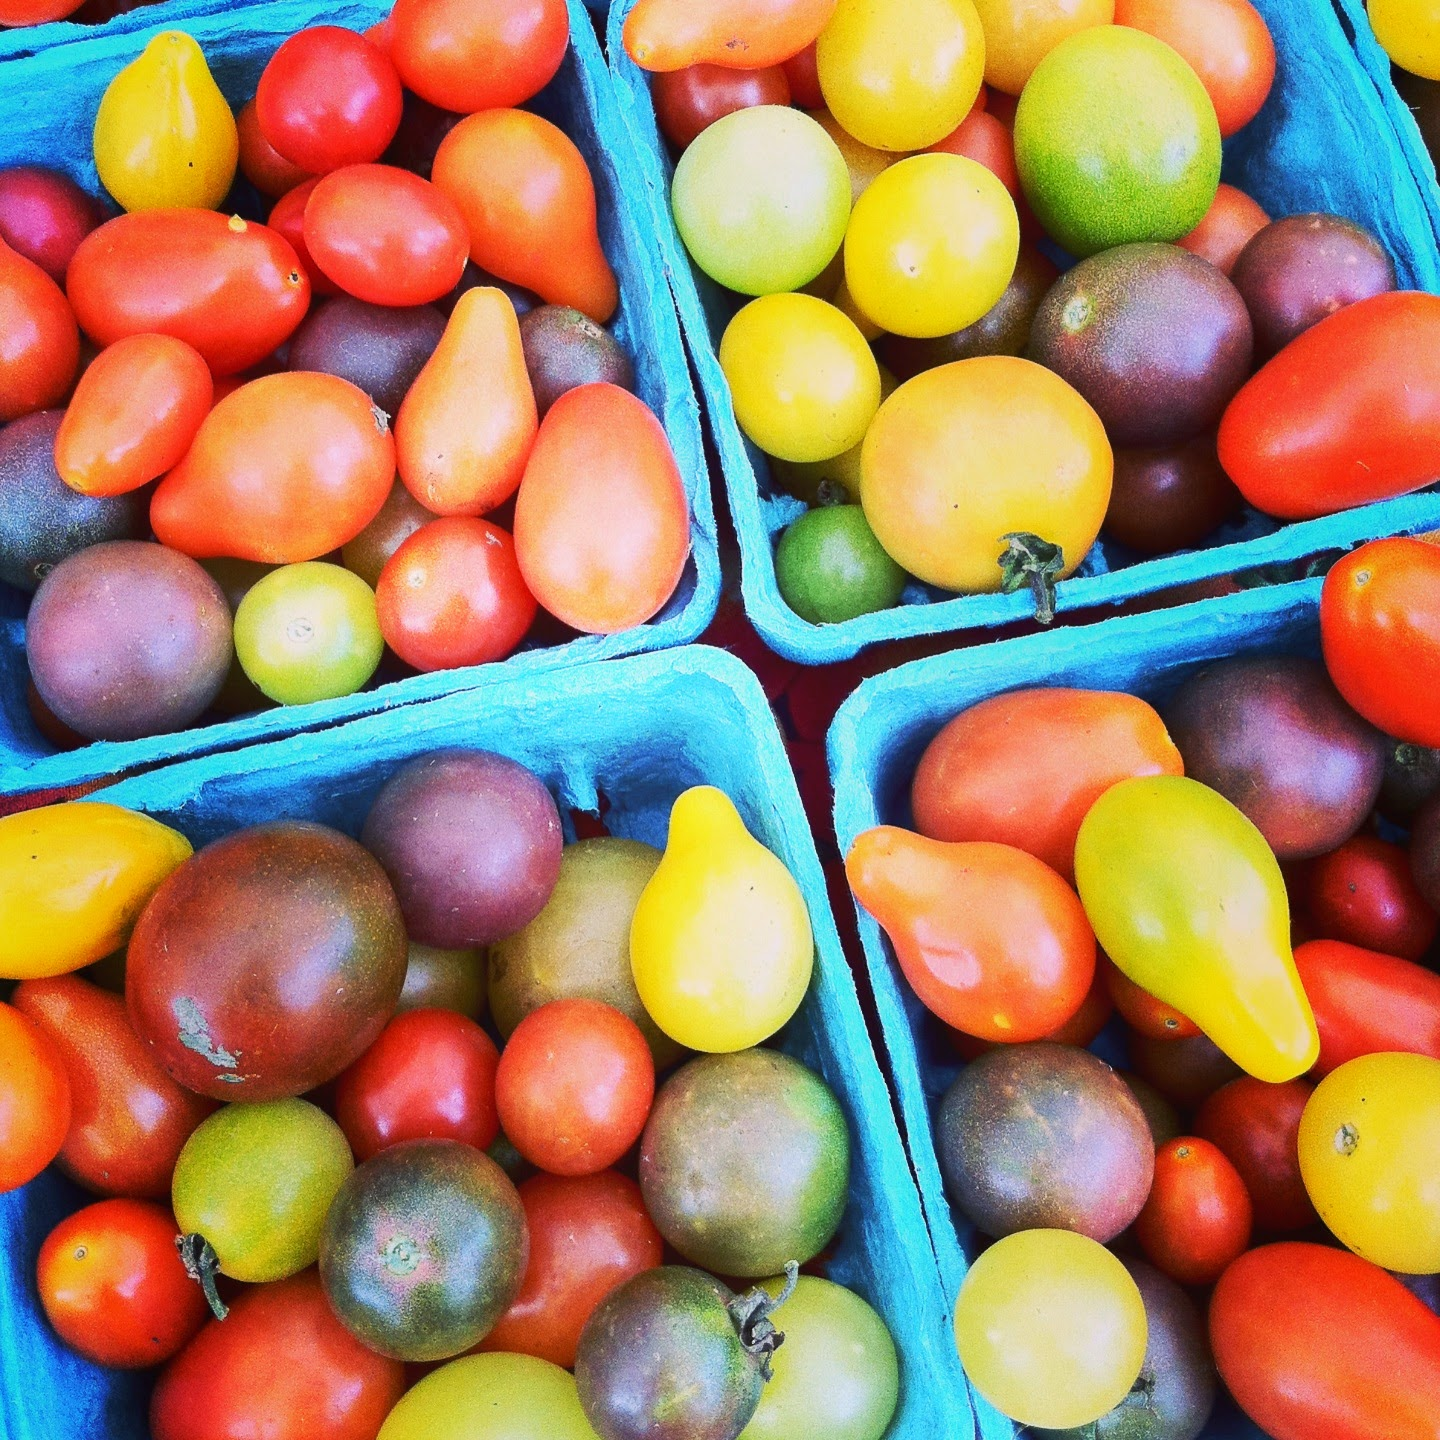 is fruit shoot healthy tomato vegetable or fruit